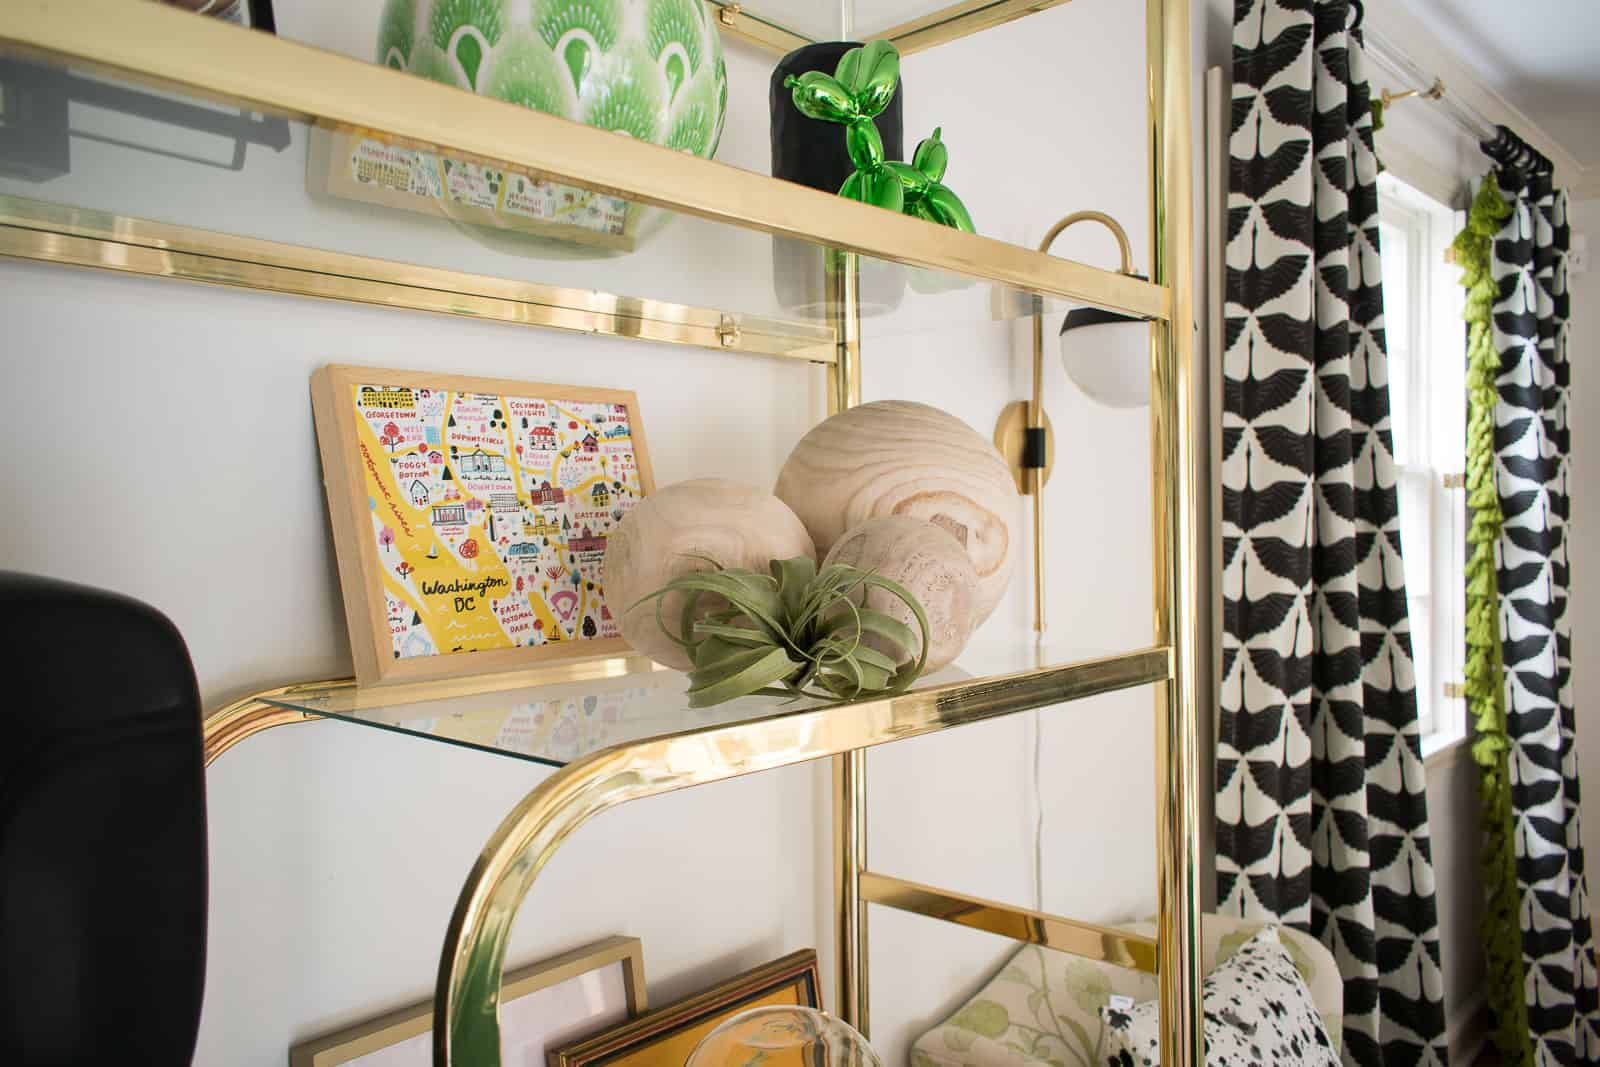 accessories on brass shelf